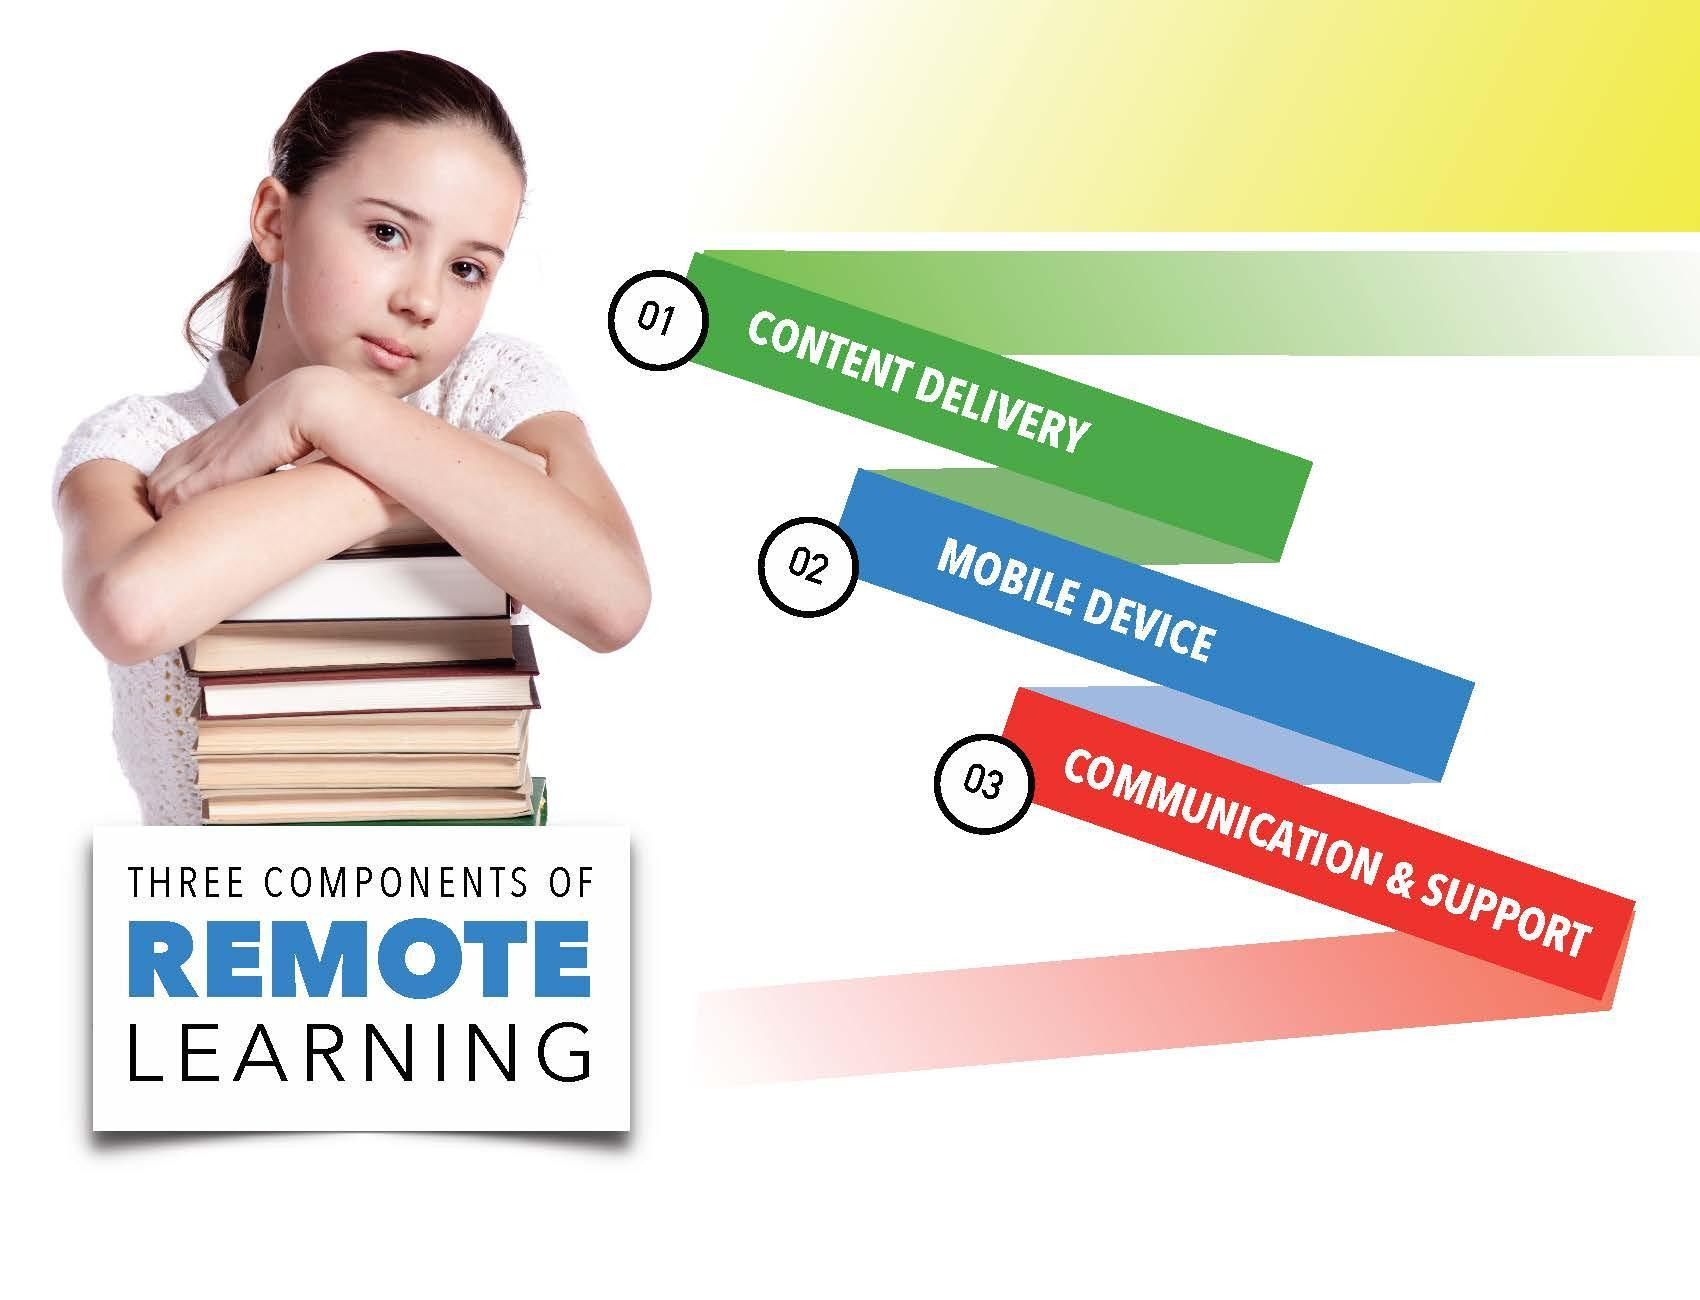 Three components of Remote Learning